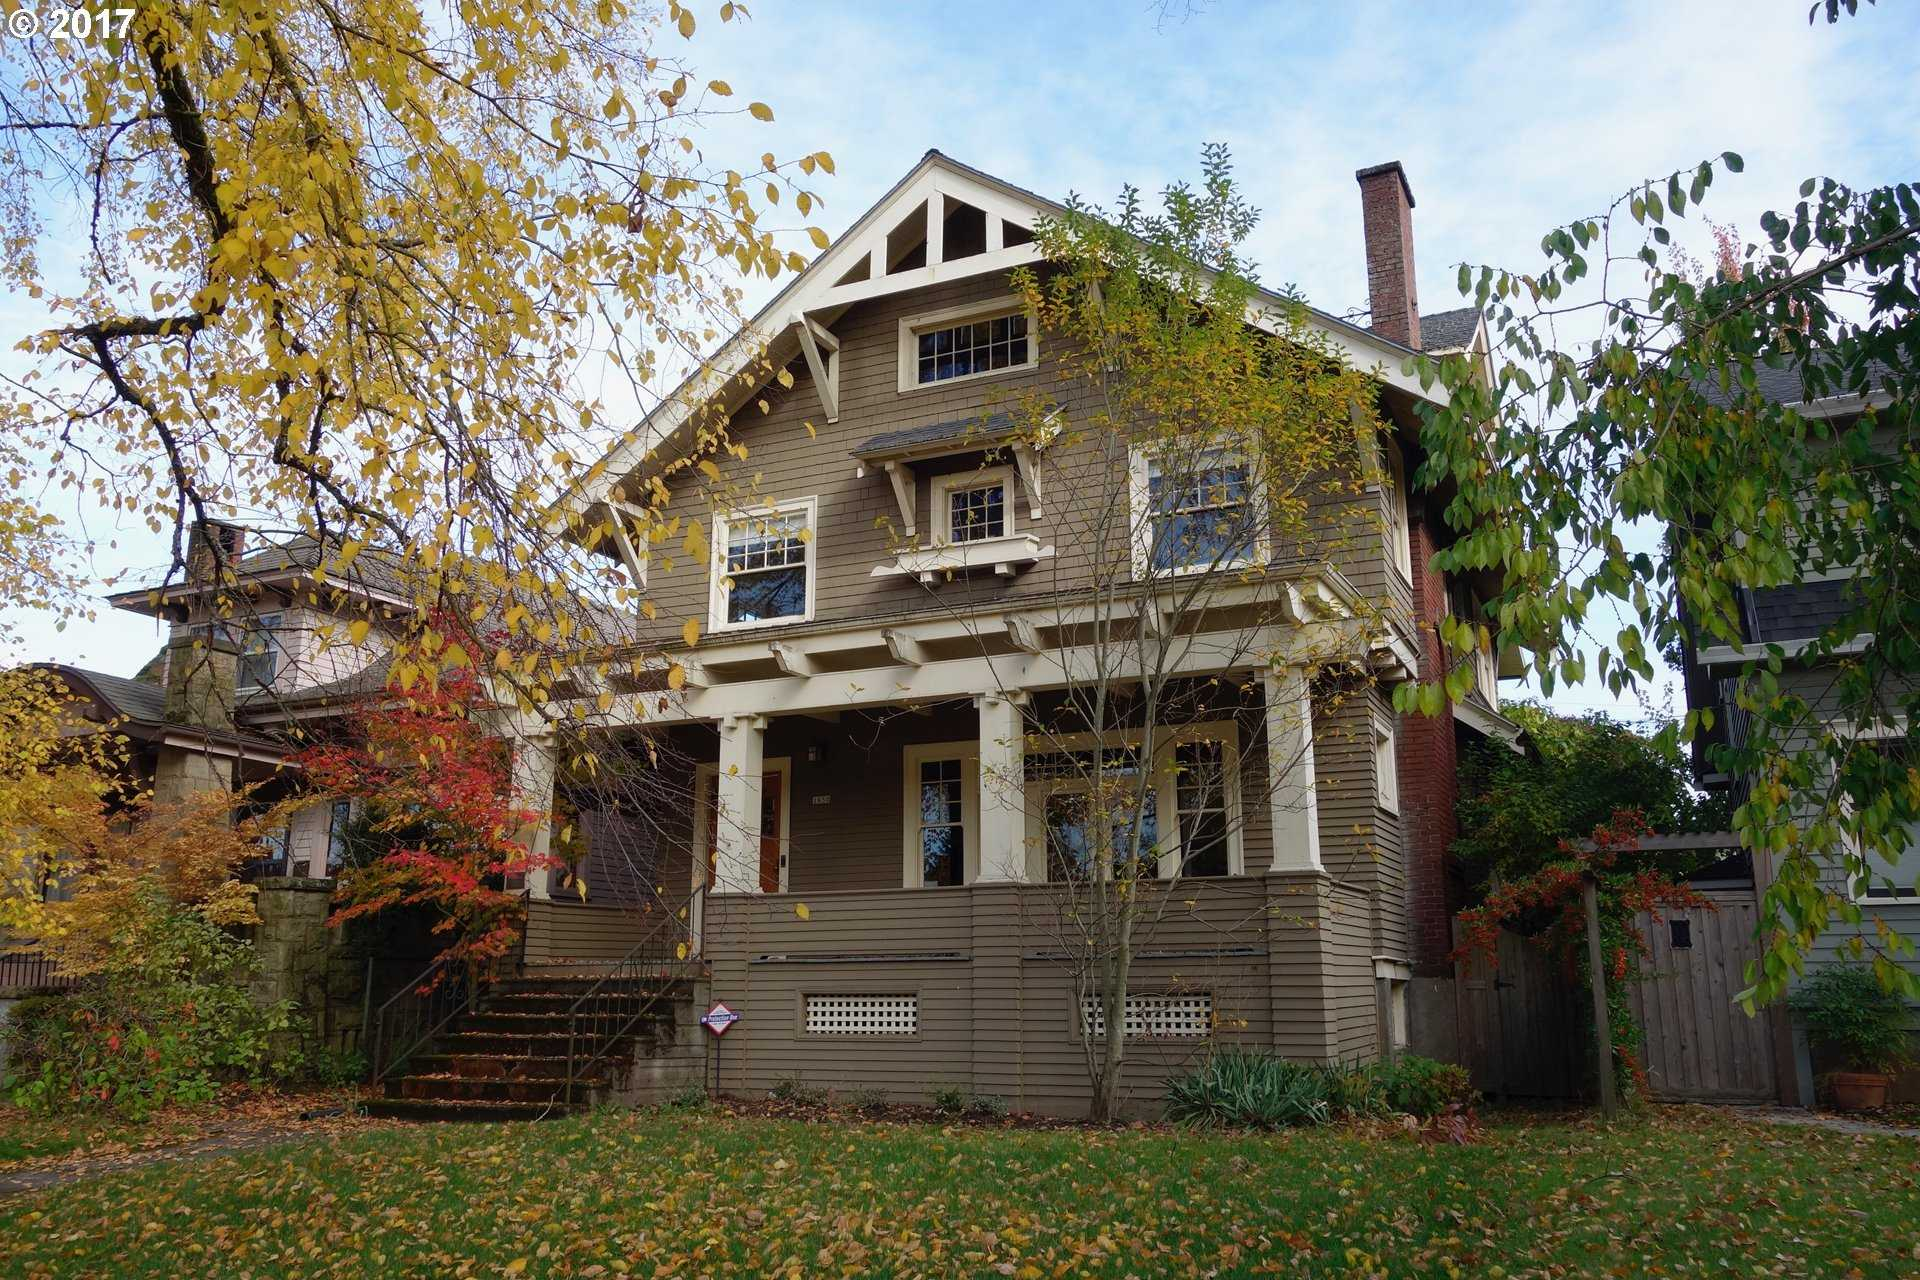 $1,100,000 - 4Br/3Ba -  for Sale in Ladds Addition, Portland